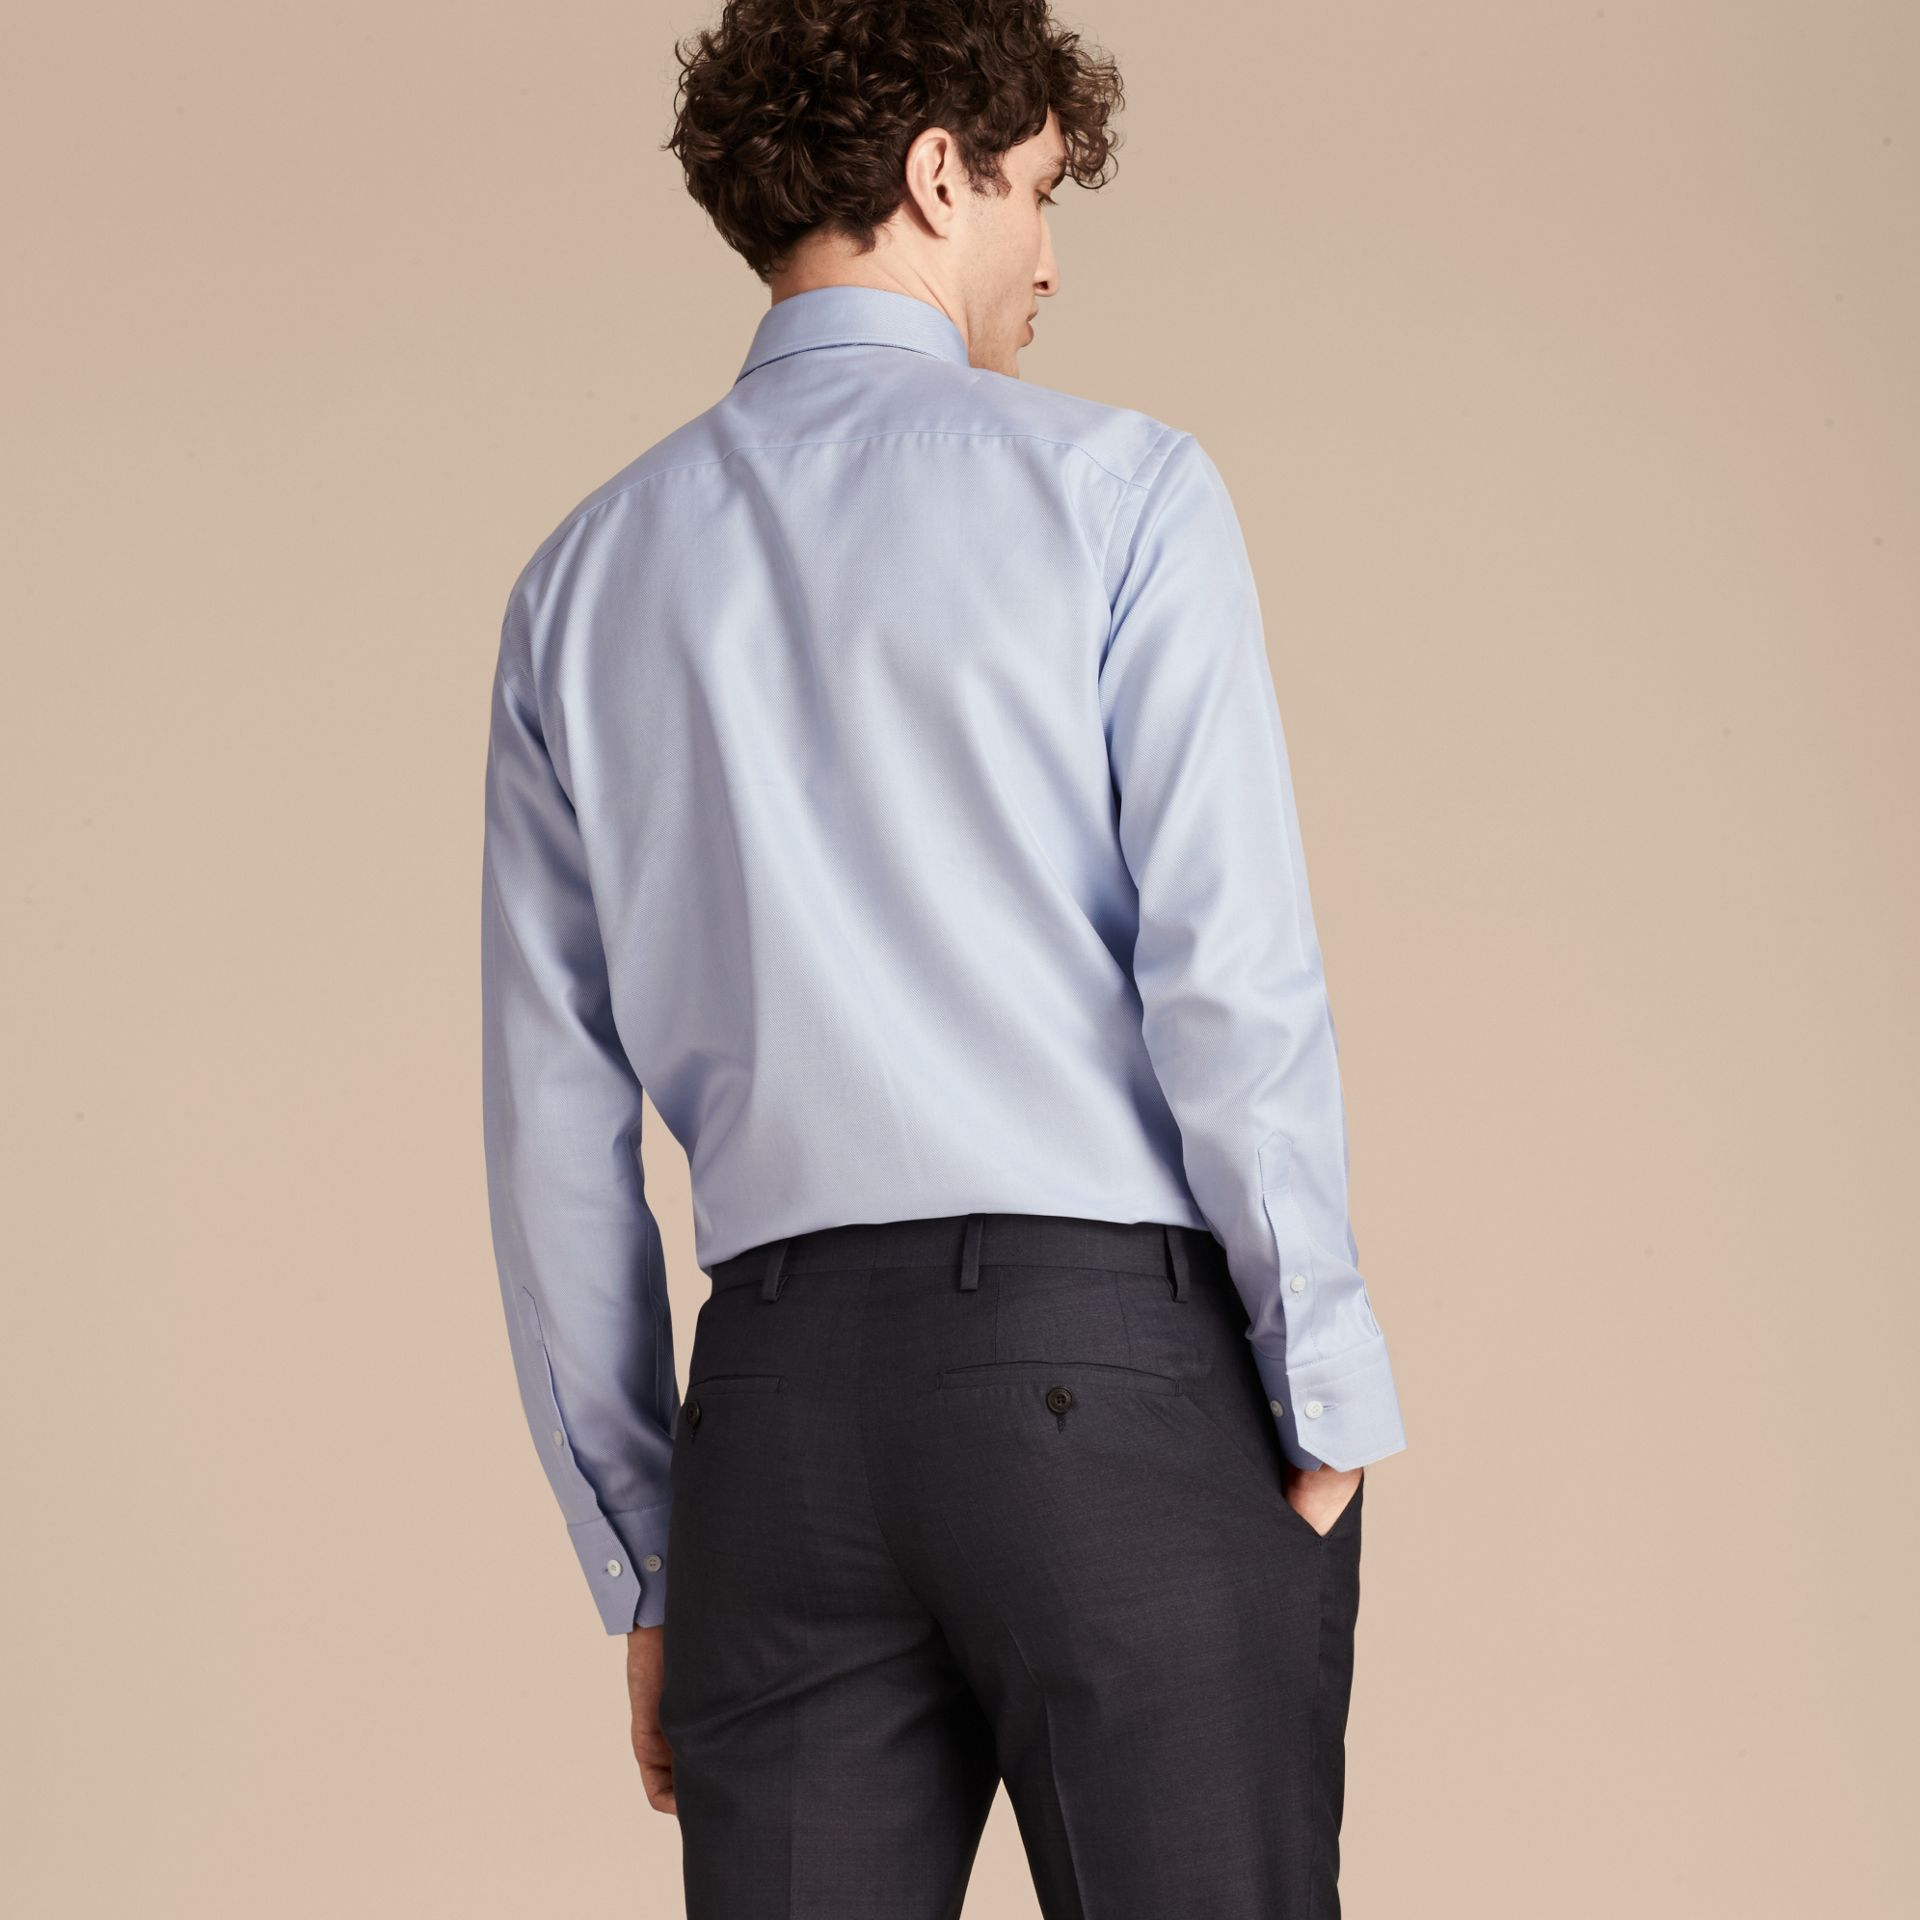 City blue Modern Fit Cotton Twill Shirt City Blue - gallery image 3